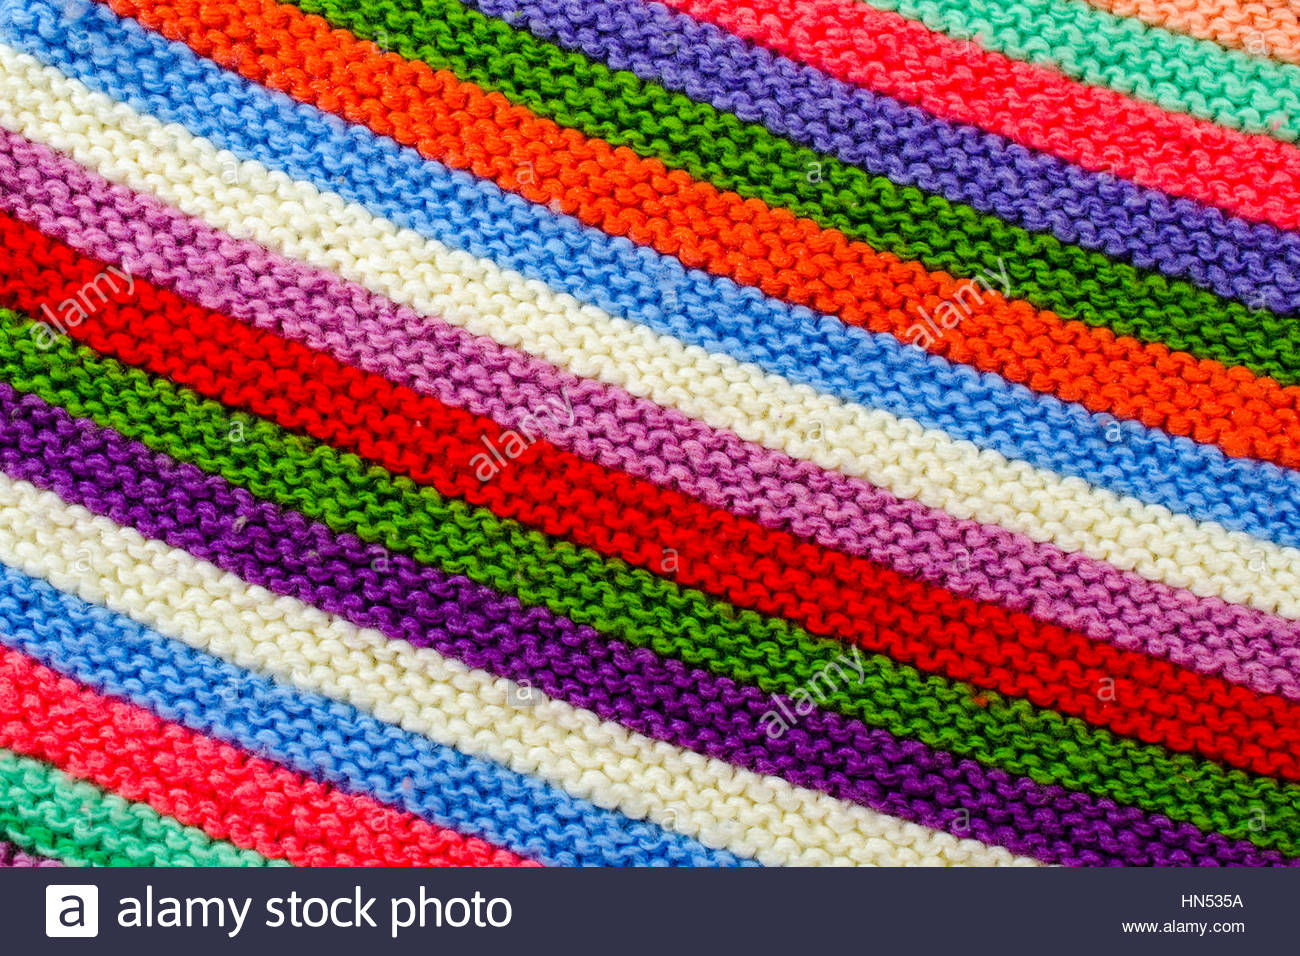 warm knitted winter backgrounds - Stock Image